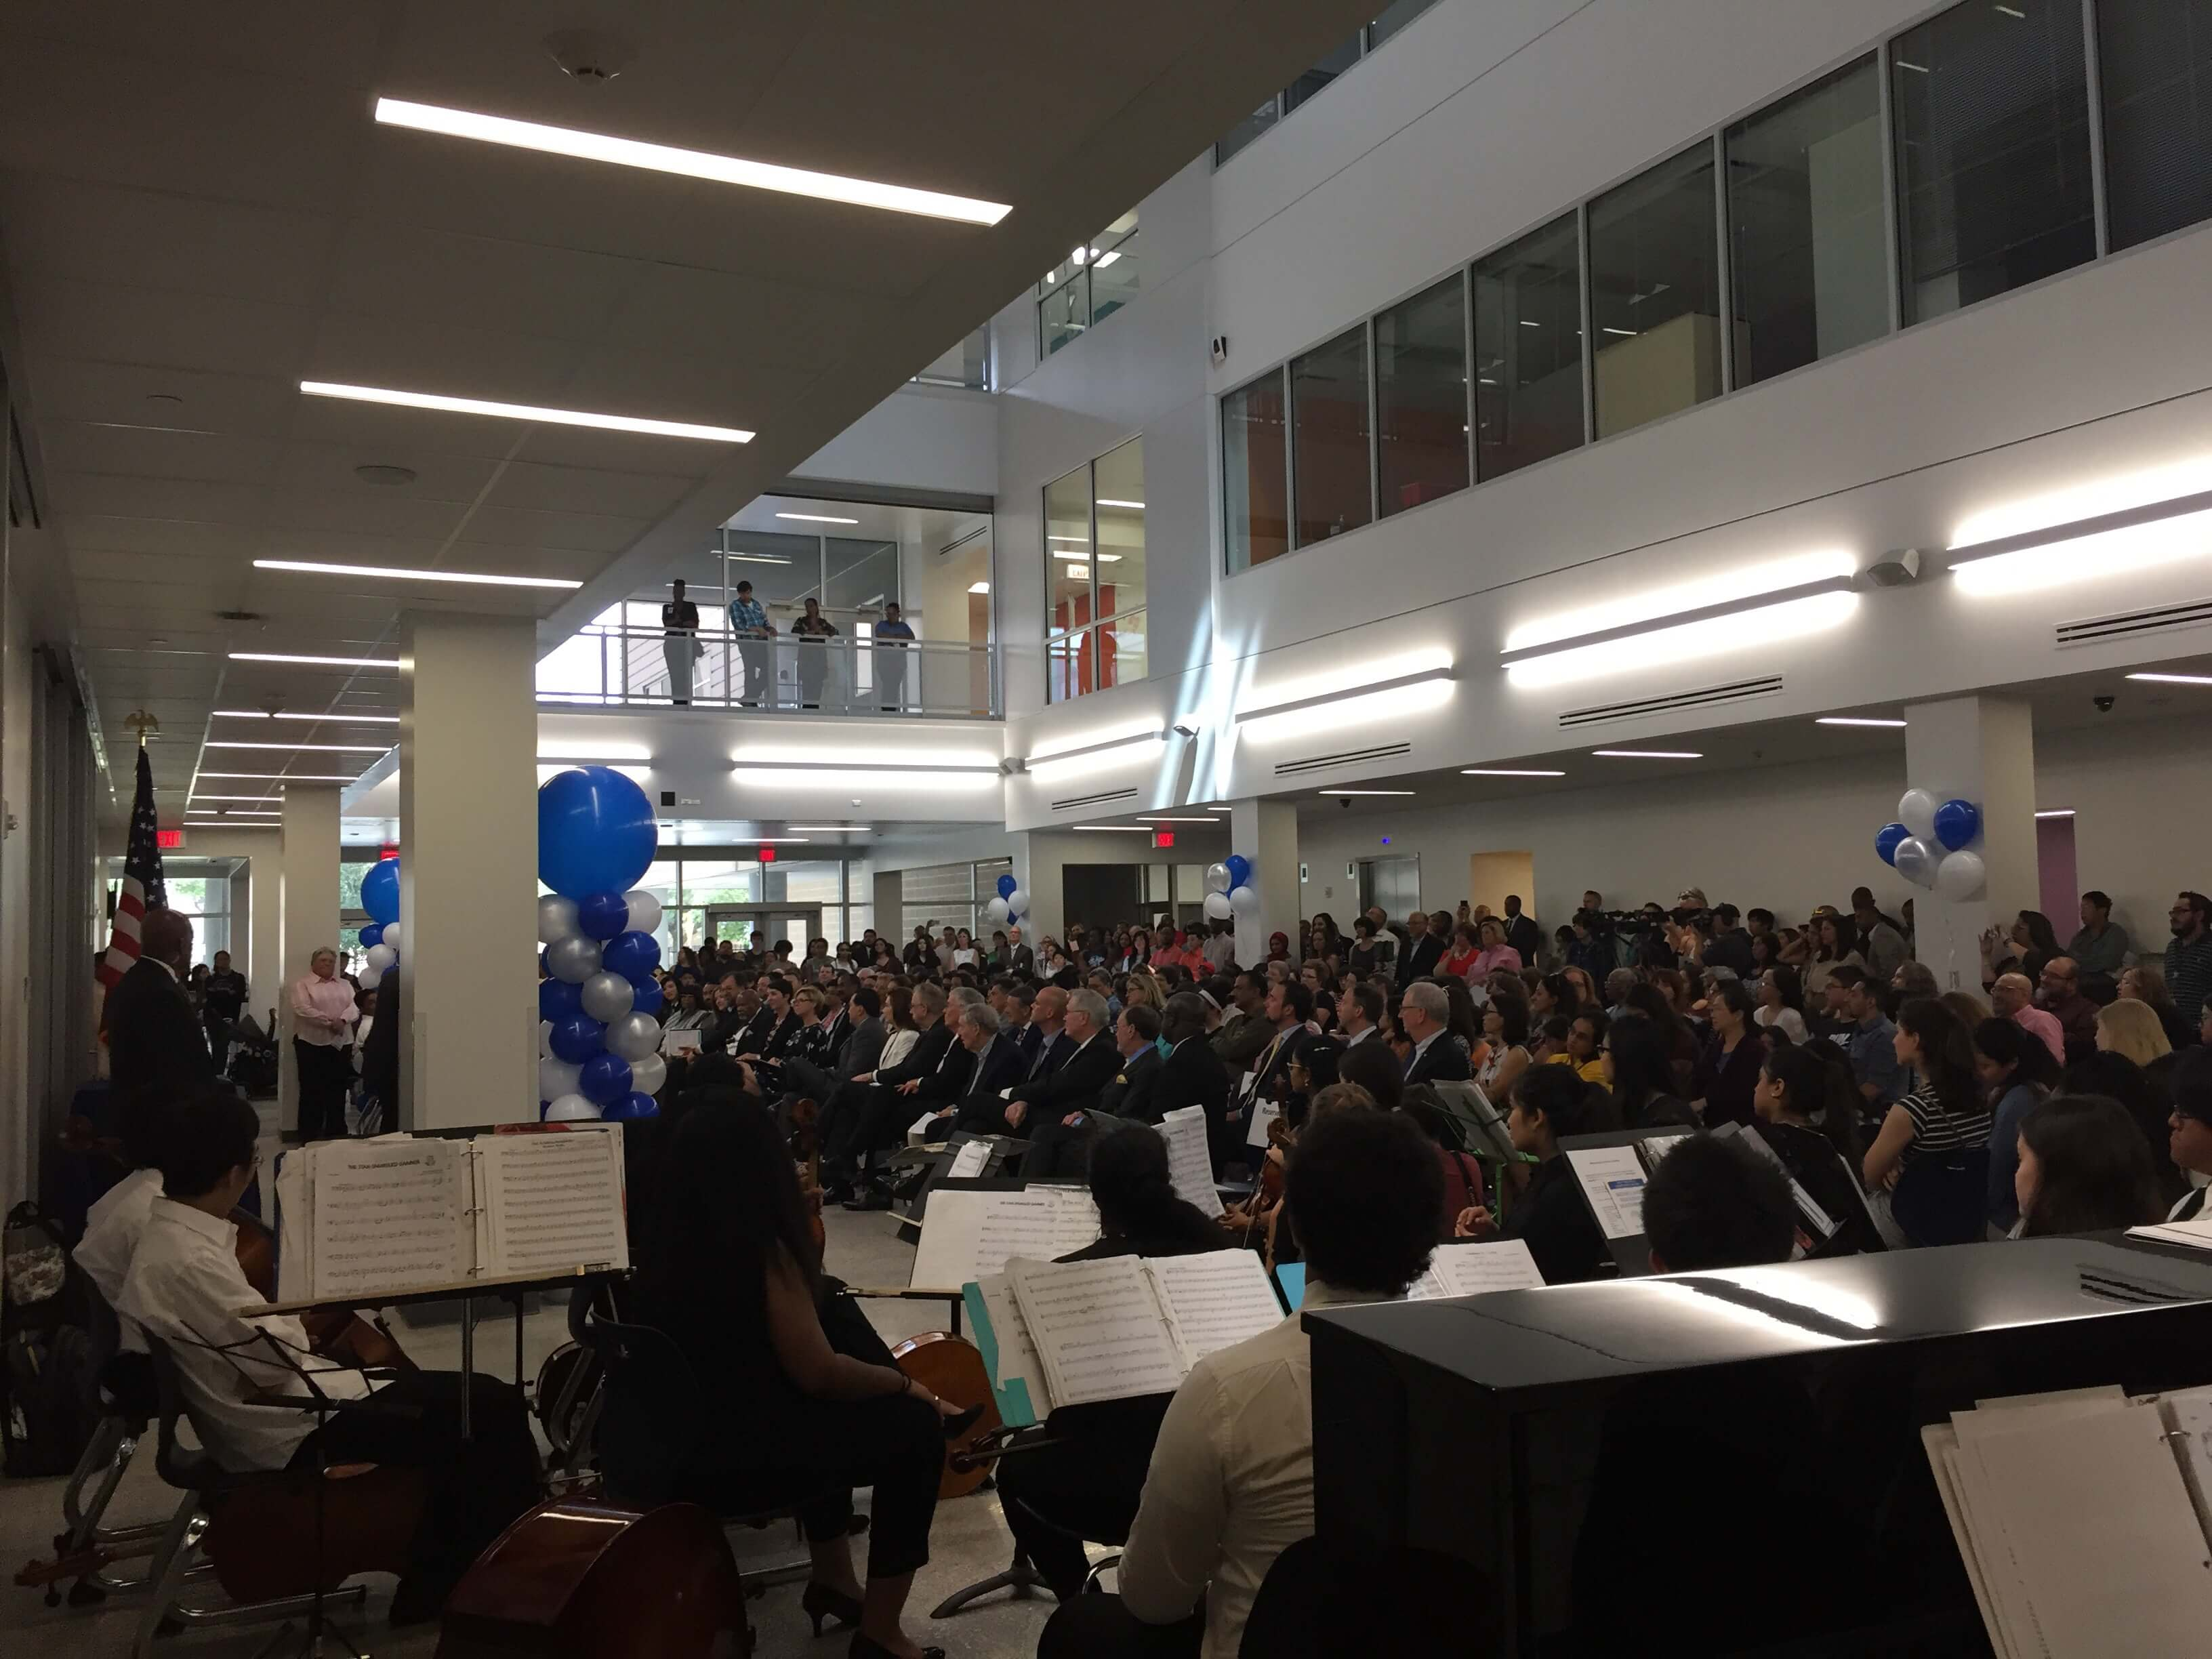 Grand opening celebration for the Michael E. DeBakey High School for Health Professions.